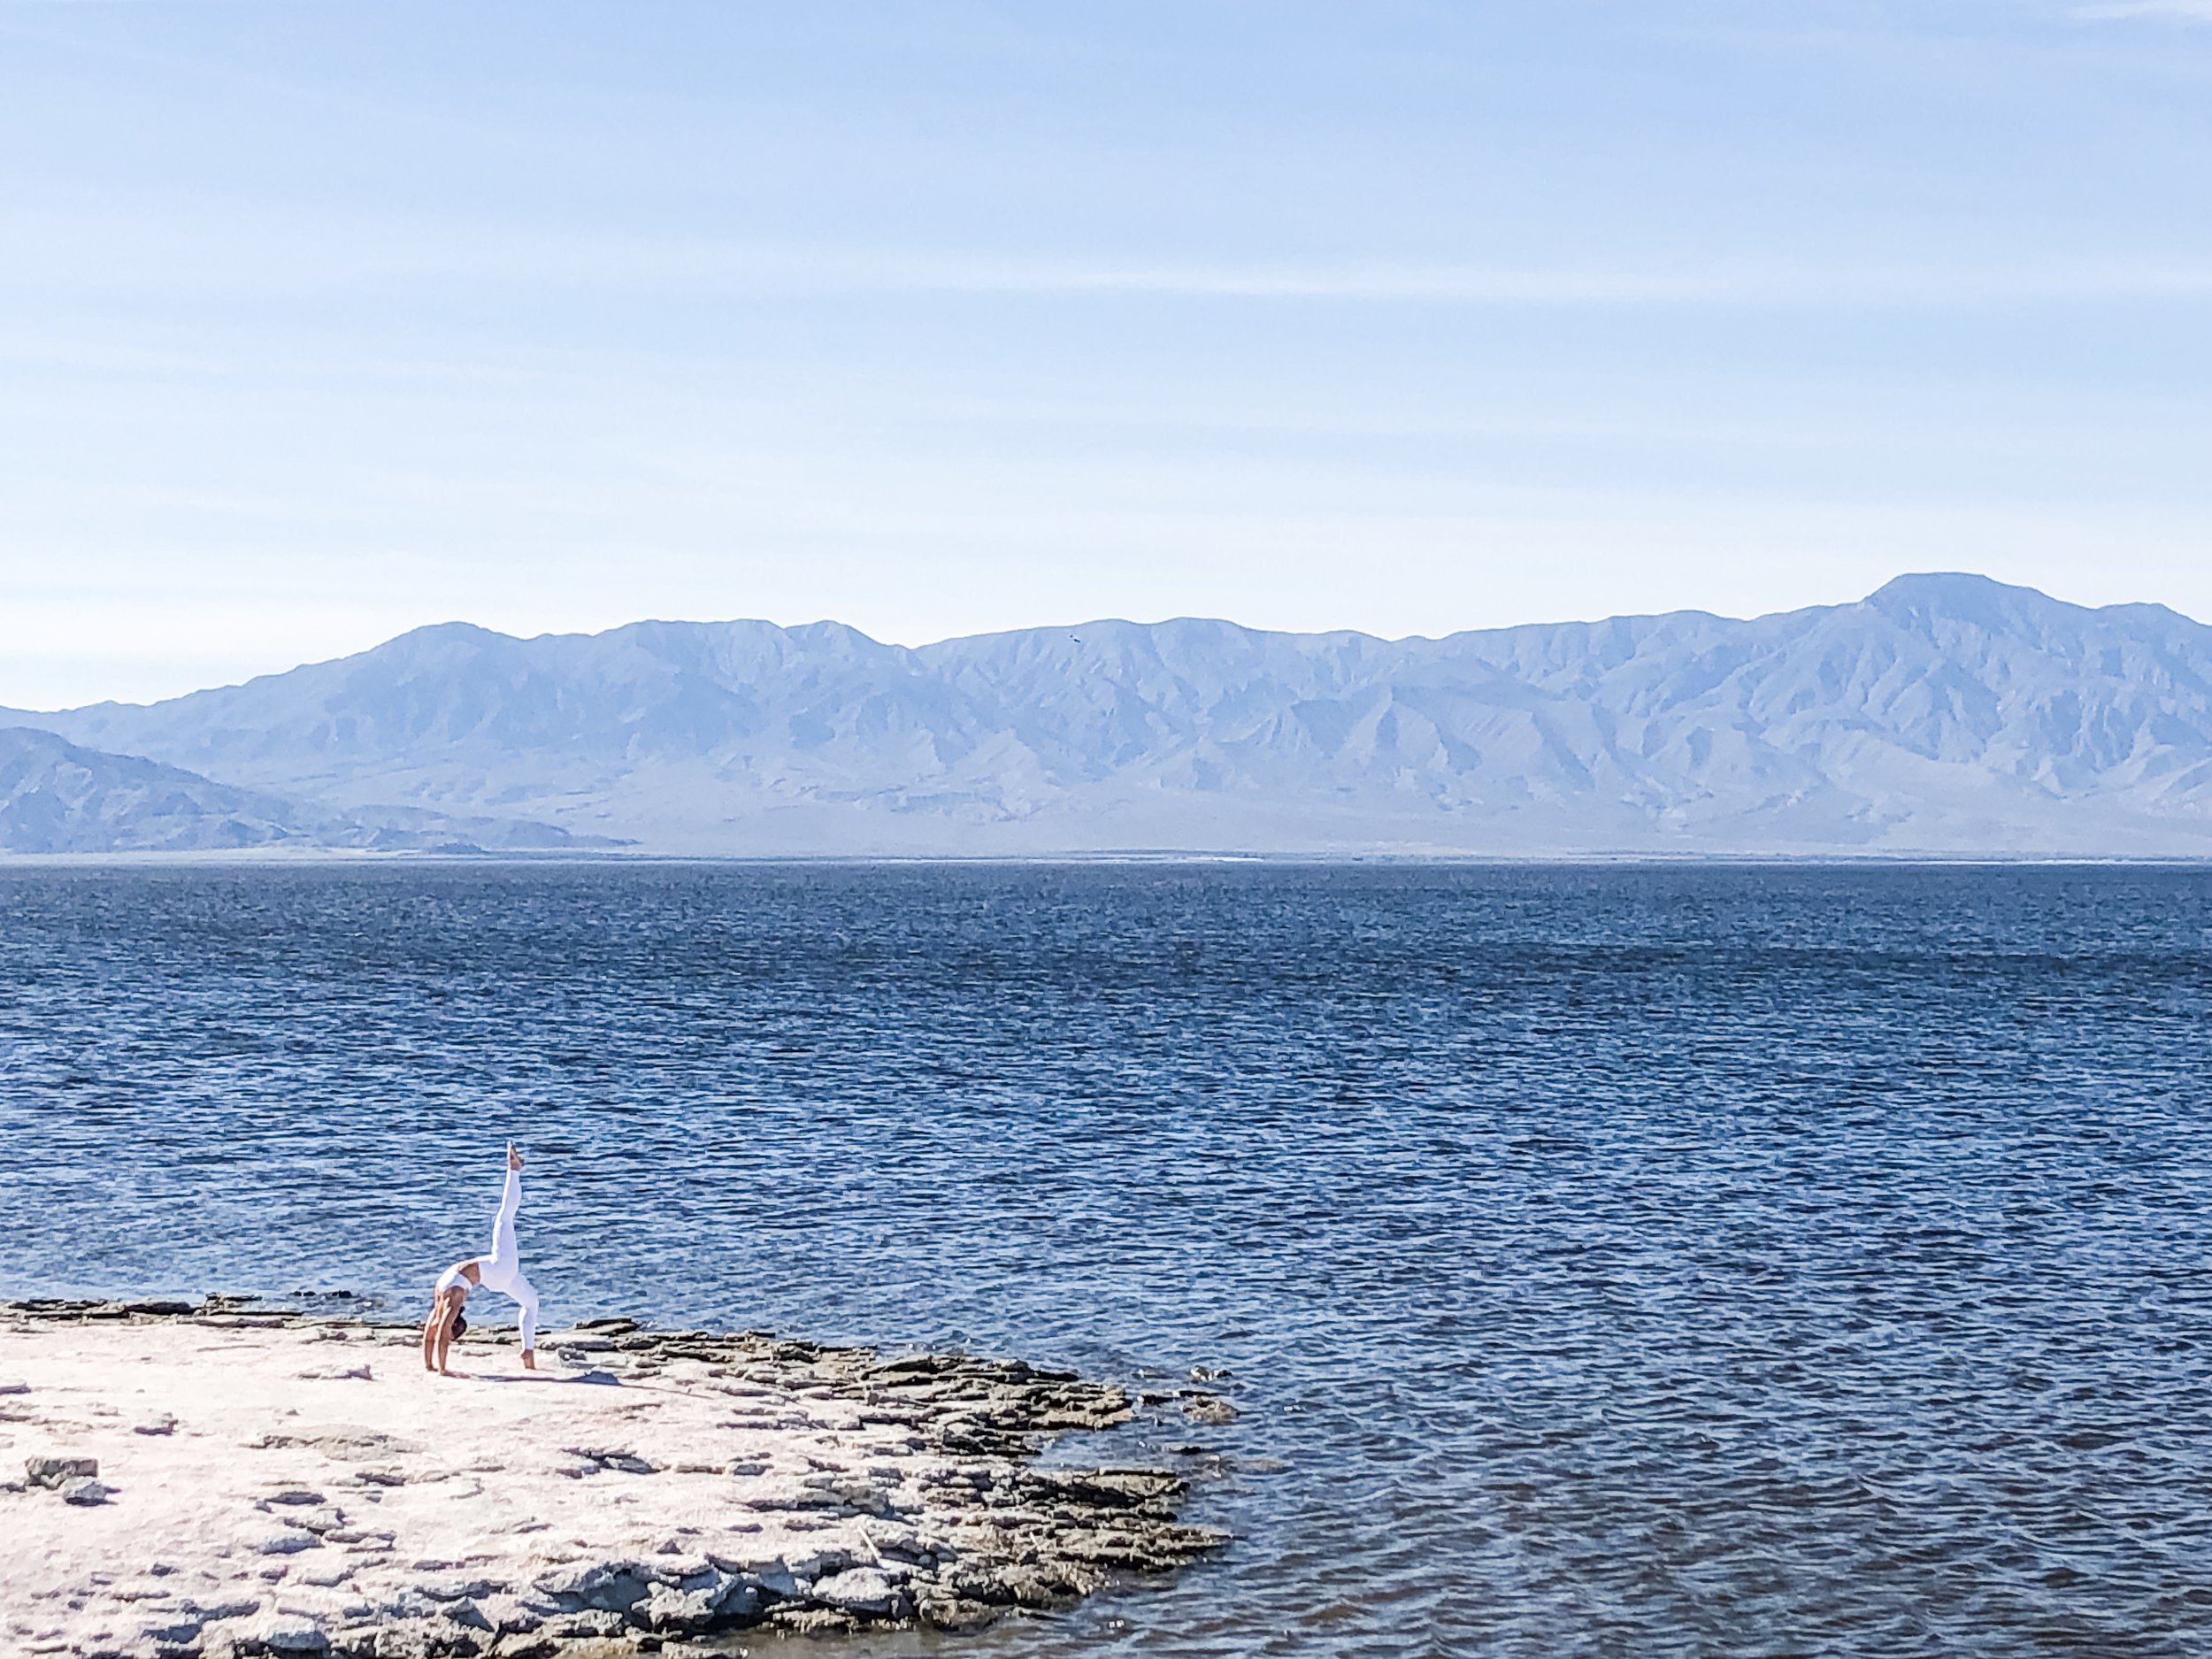 Salton Sea, California |  Breathtaking views of the mountains